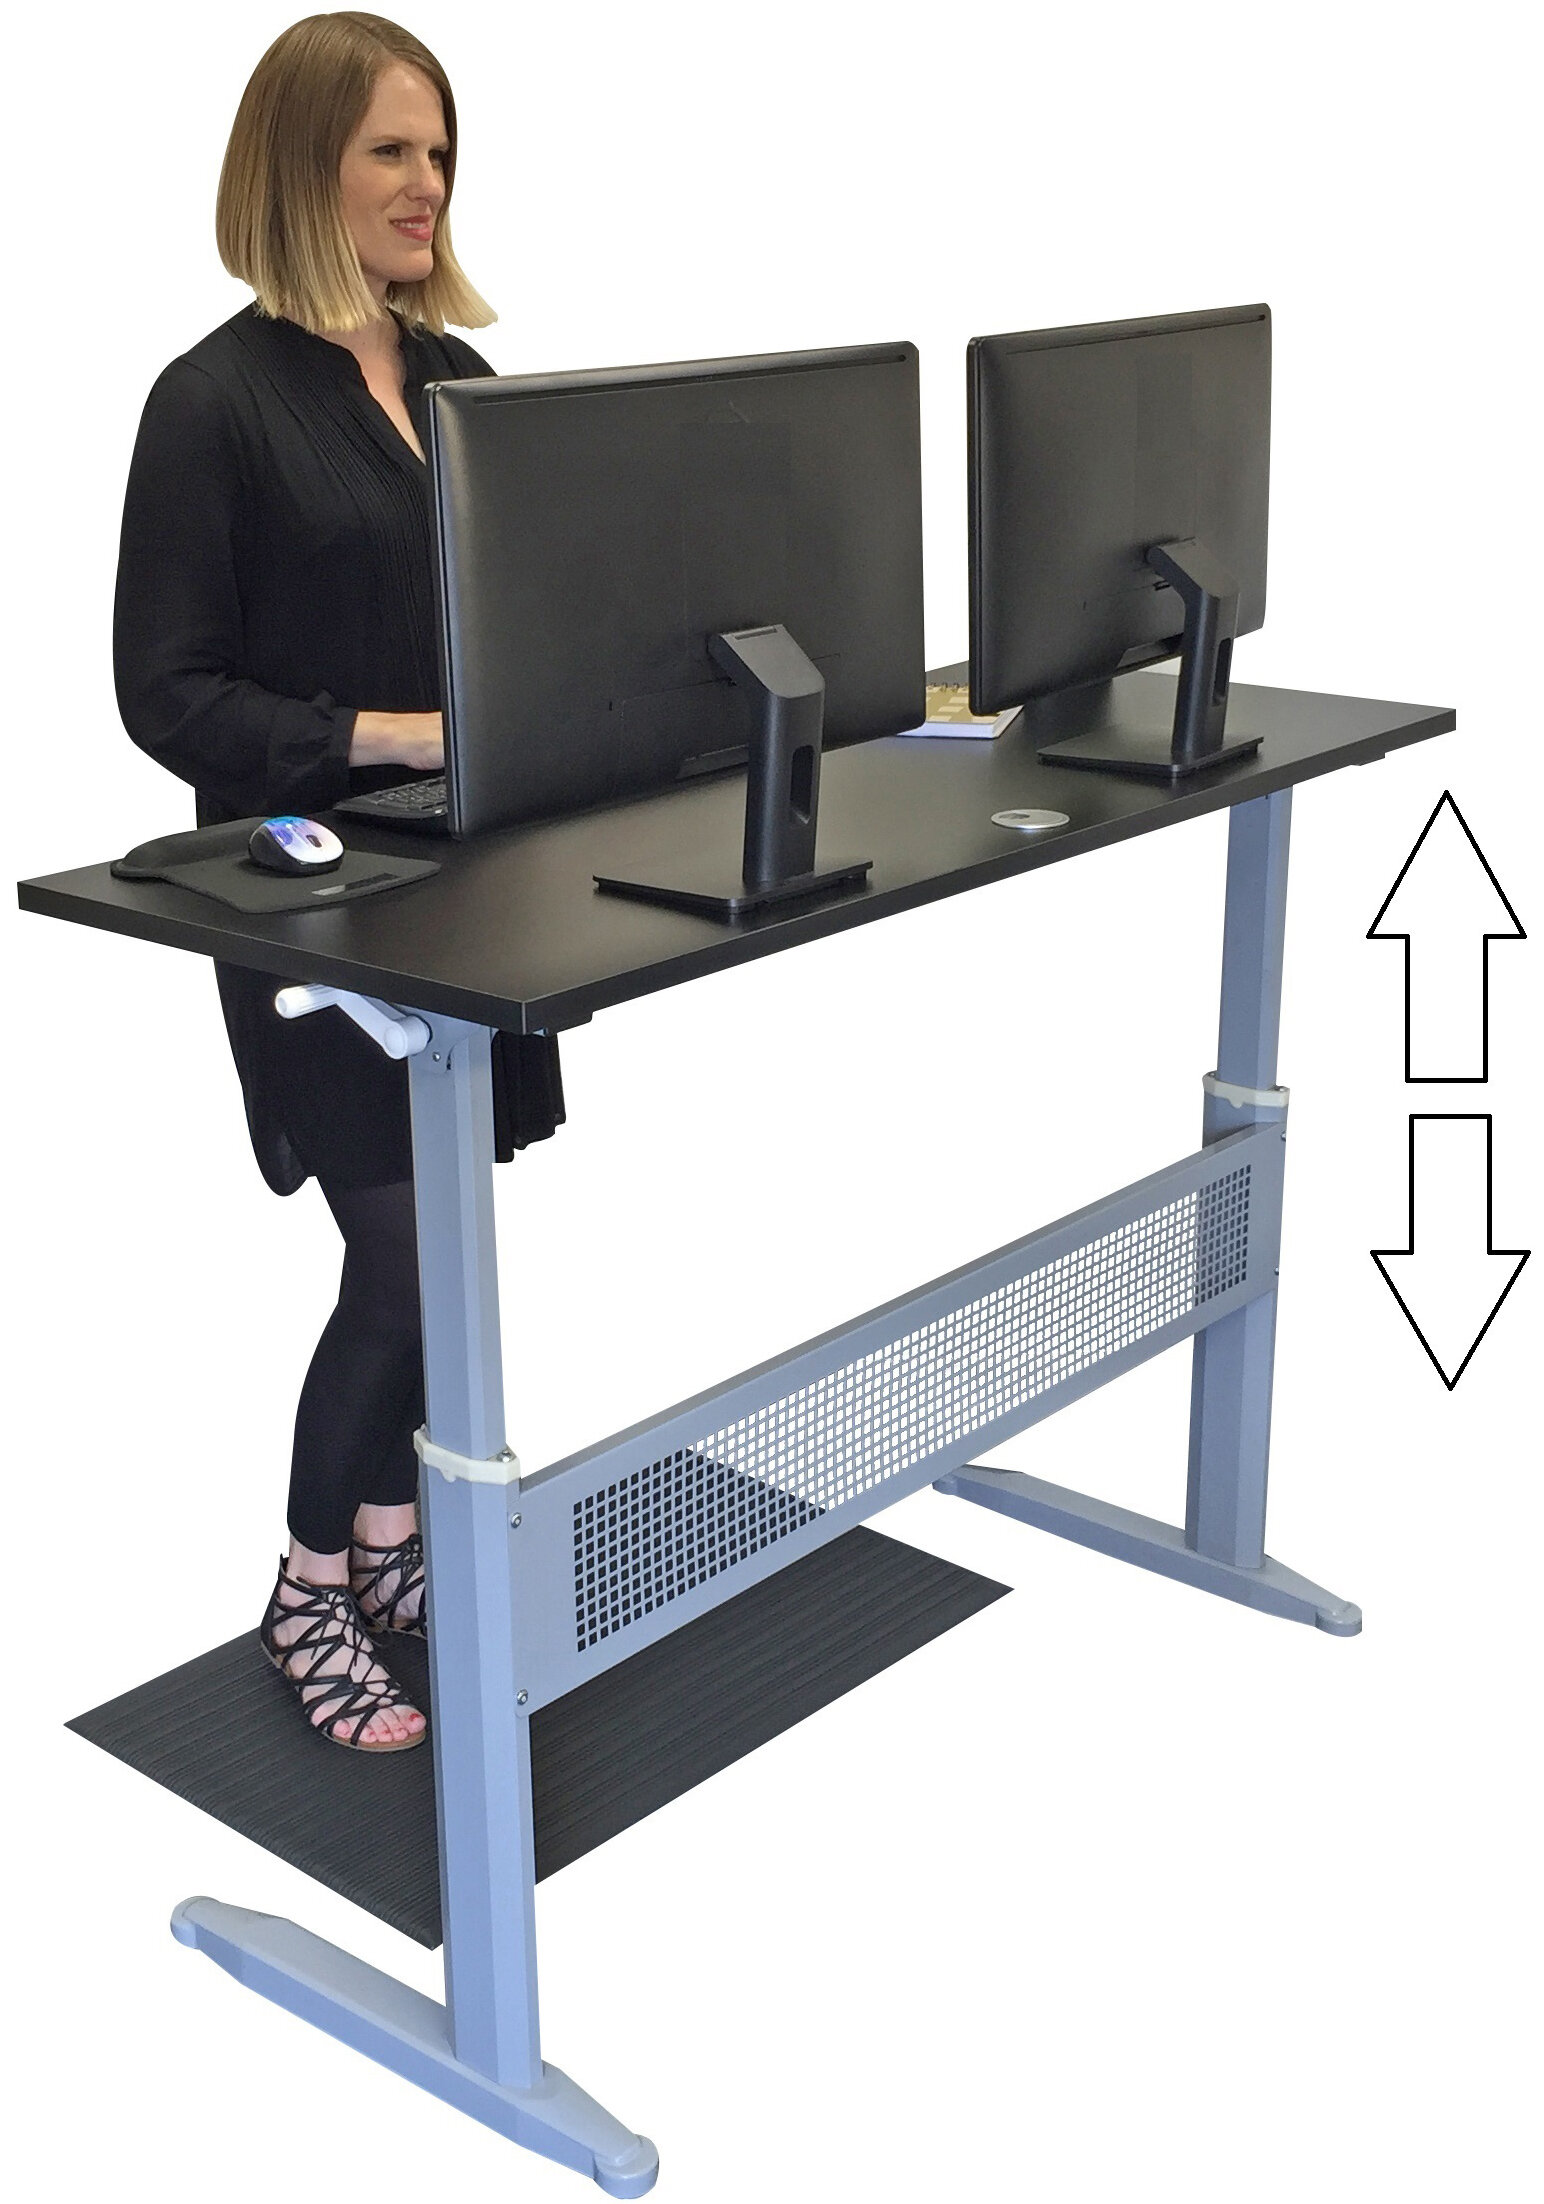 stand workstation standing up electric desk raising height adjustable gray